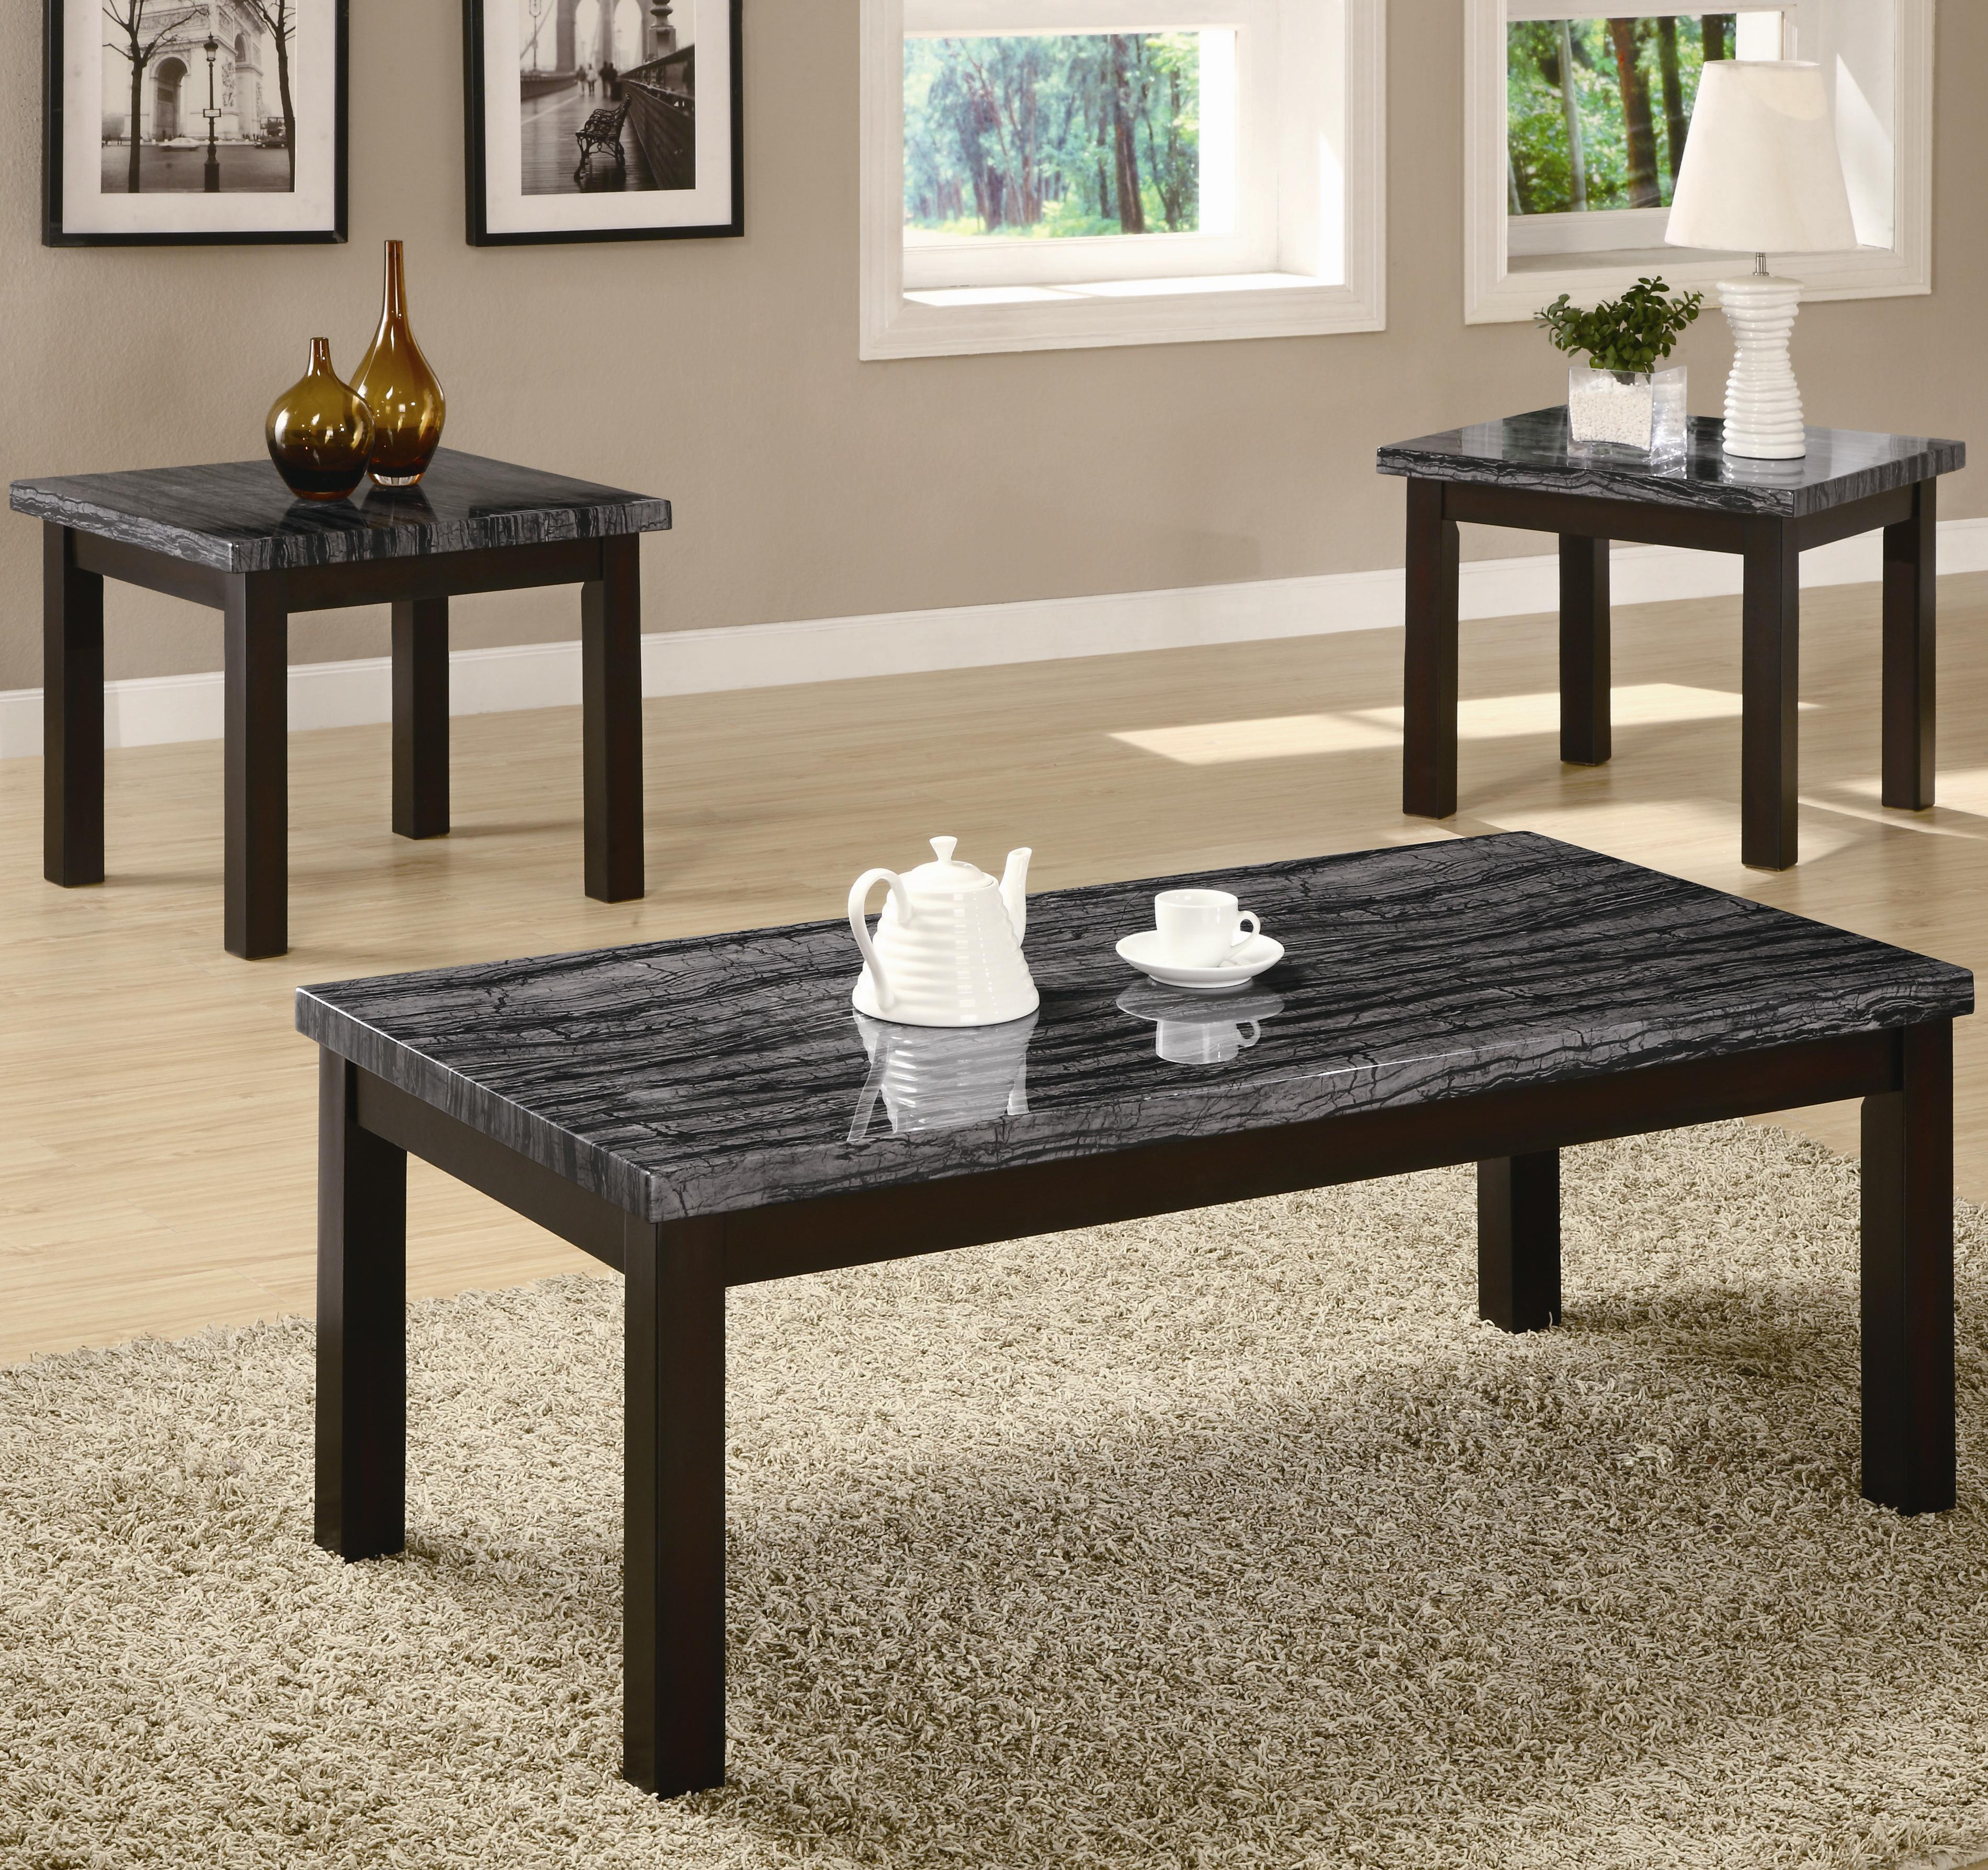 Cappuccino Coffee Table Set.Occasional Table Sets 3 Piece Table Sets By Coaster Sam Levitz